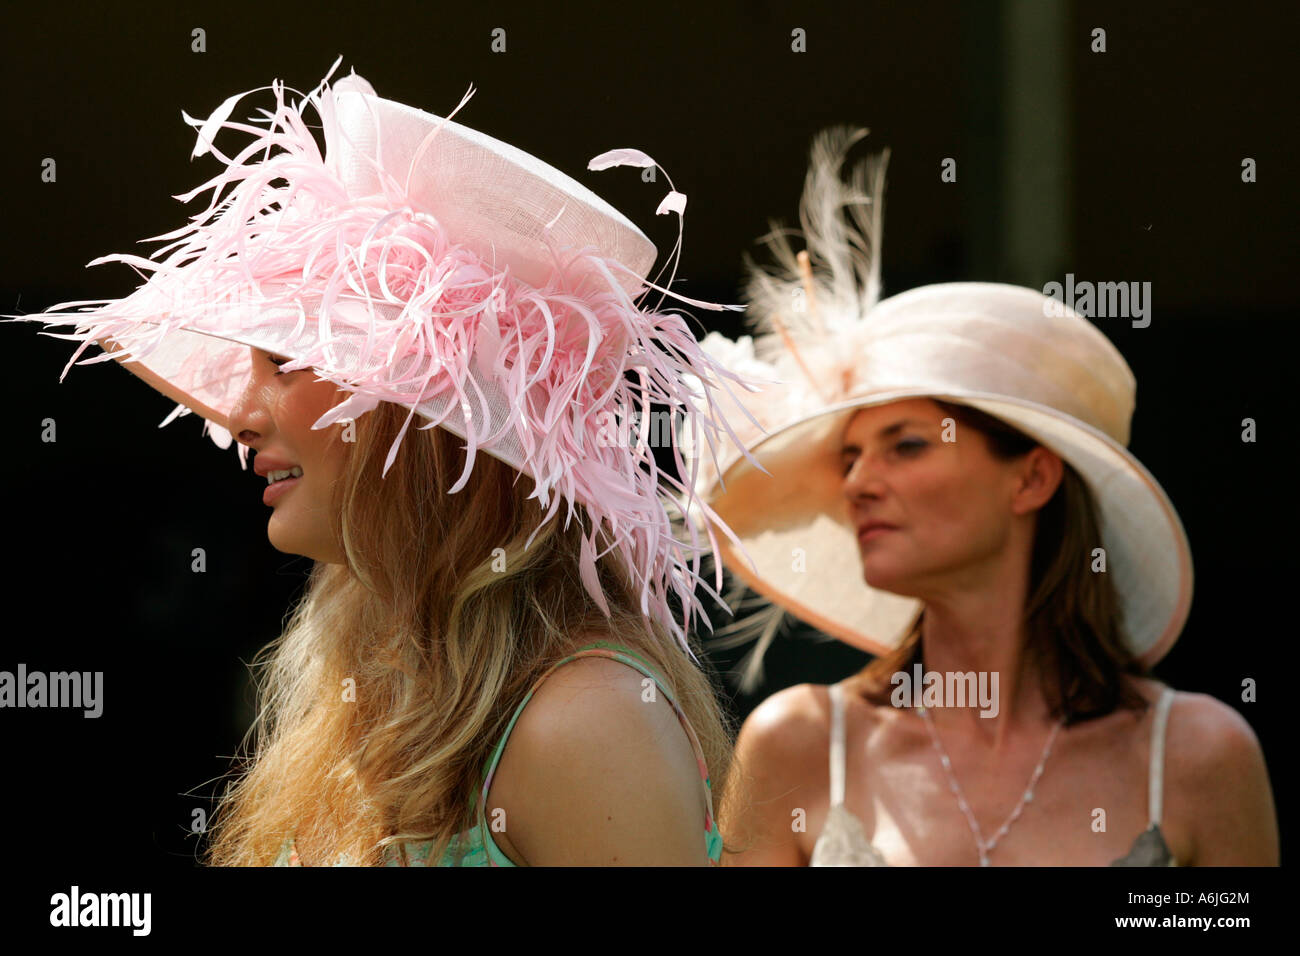 Chiara Ohoven at horse races, Iffezheim, Germany - Stock Image